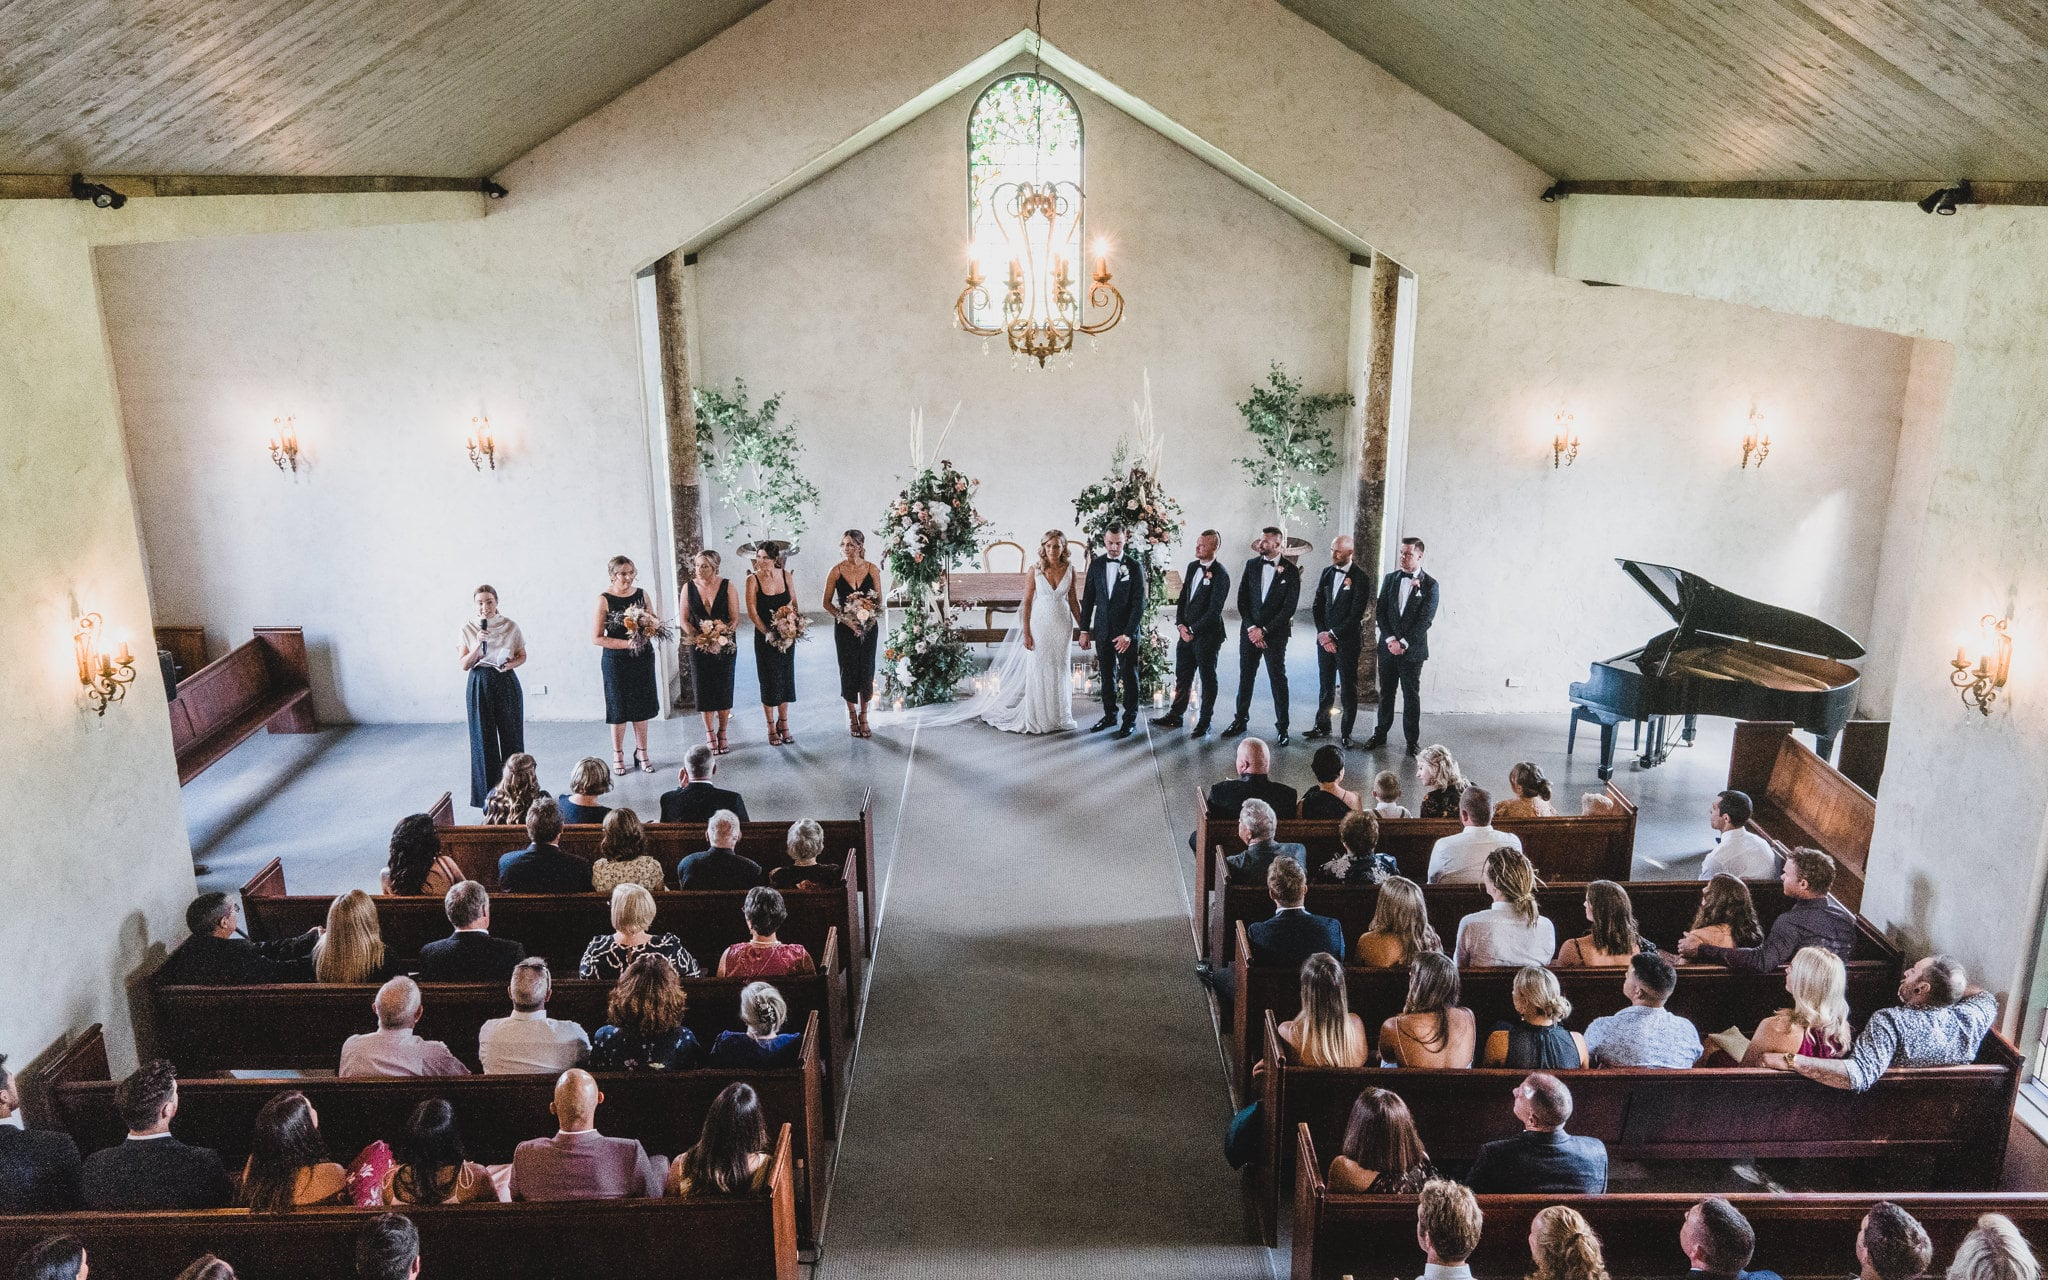 View of the whole wedding ceremony from above in the Chapel